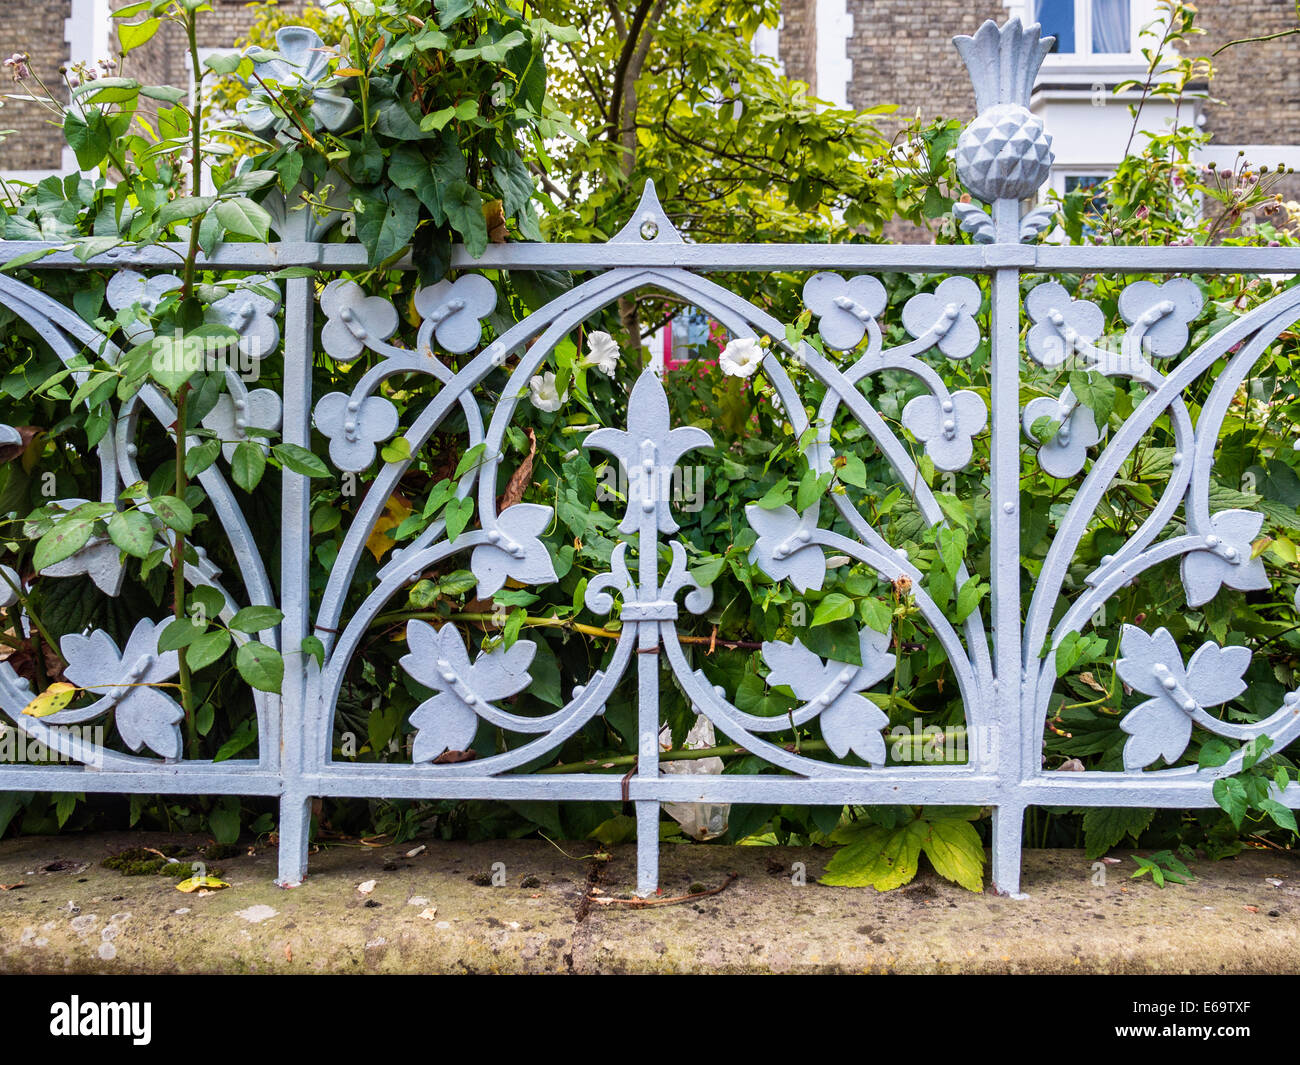 Decorative Wrought Iron Metalwork Fence With Floral Design Around Stock Photo 72746535 Alamy